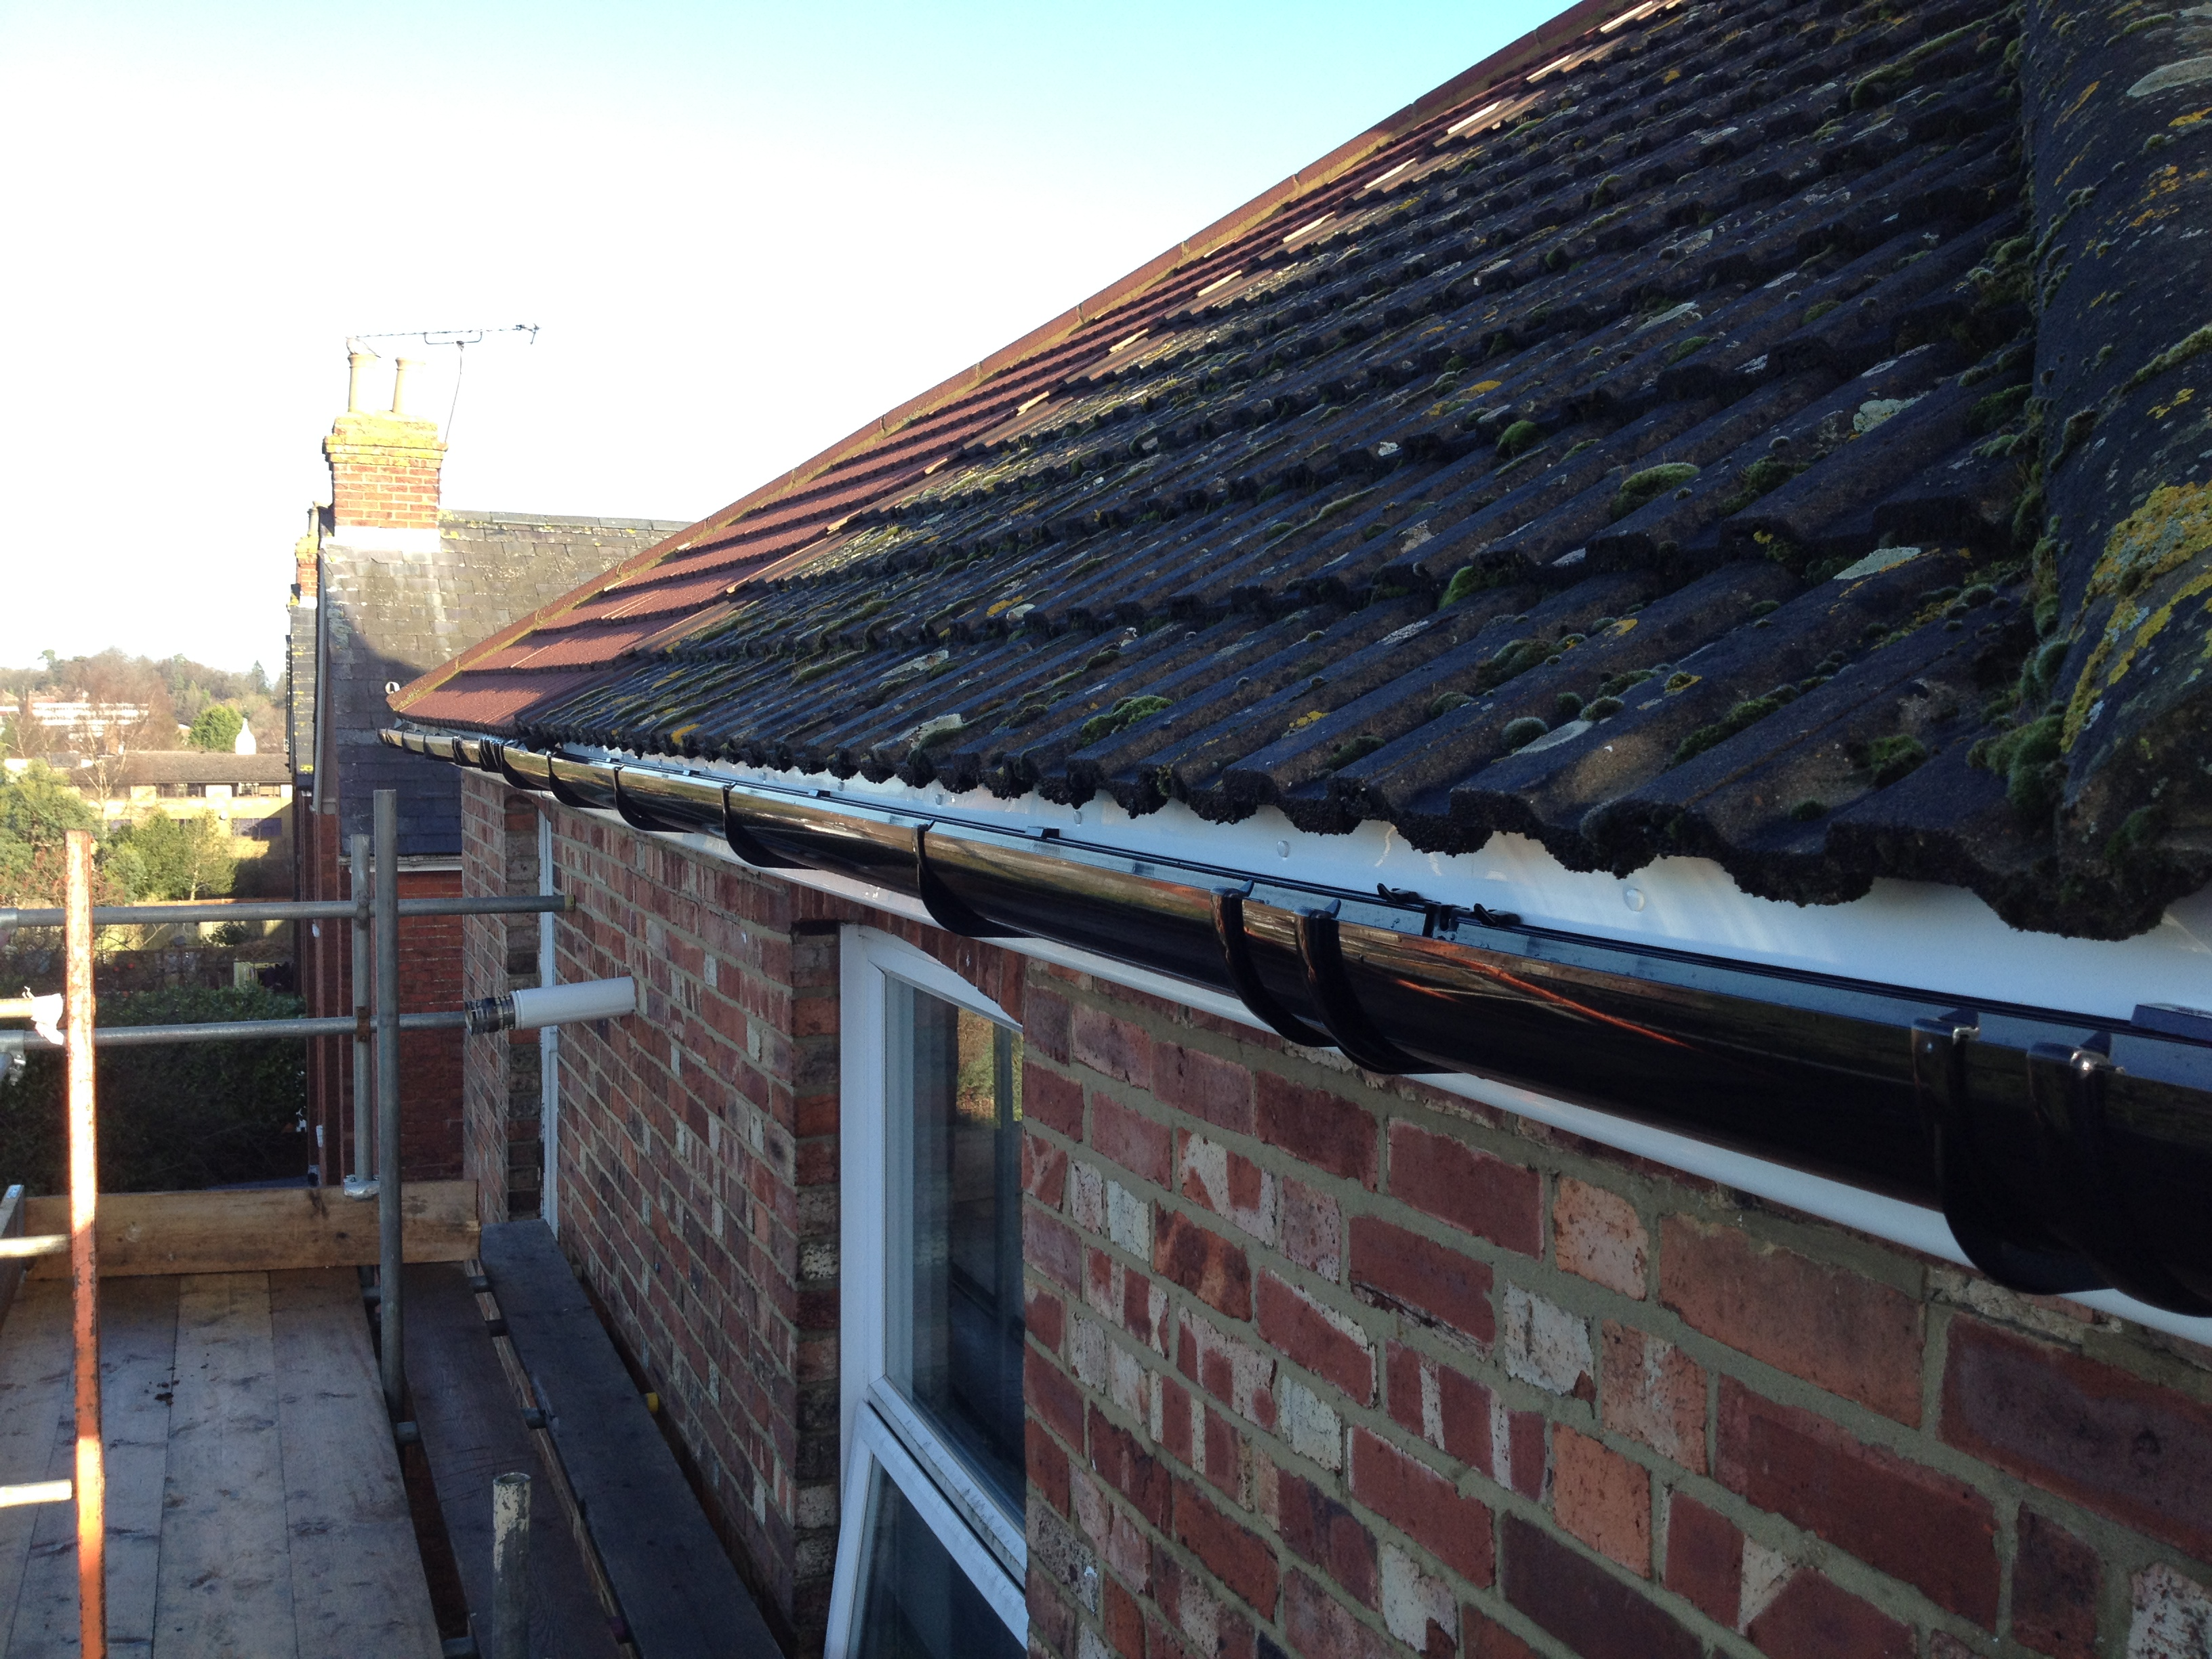 New gutter installations sevenoaks gutter cleaning company for New gutters